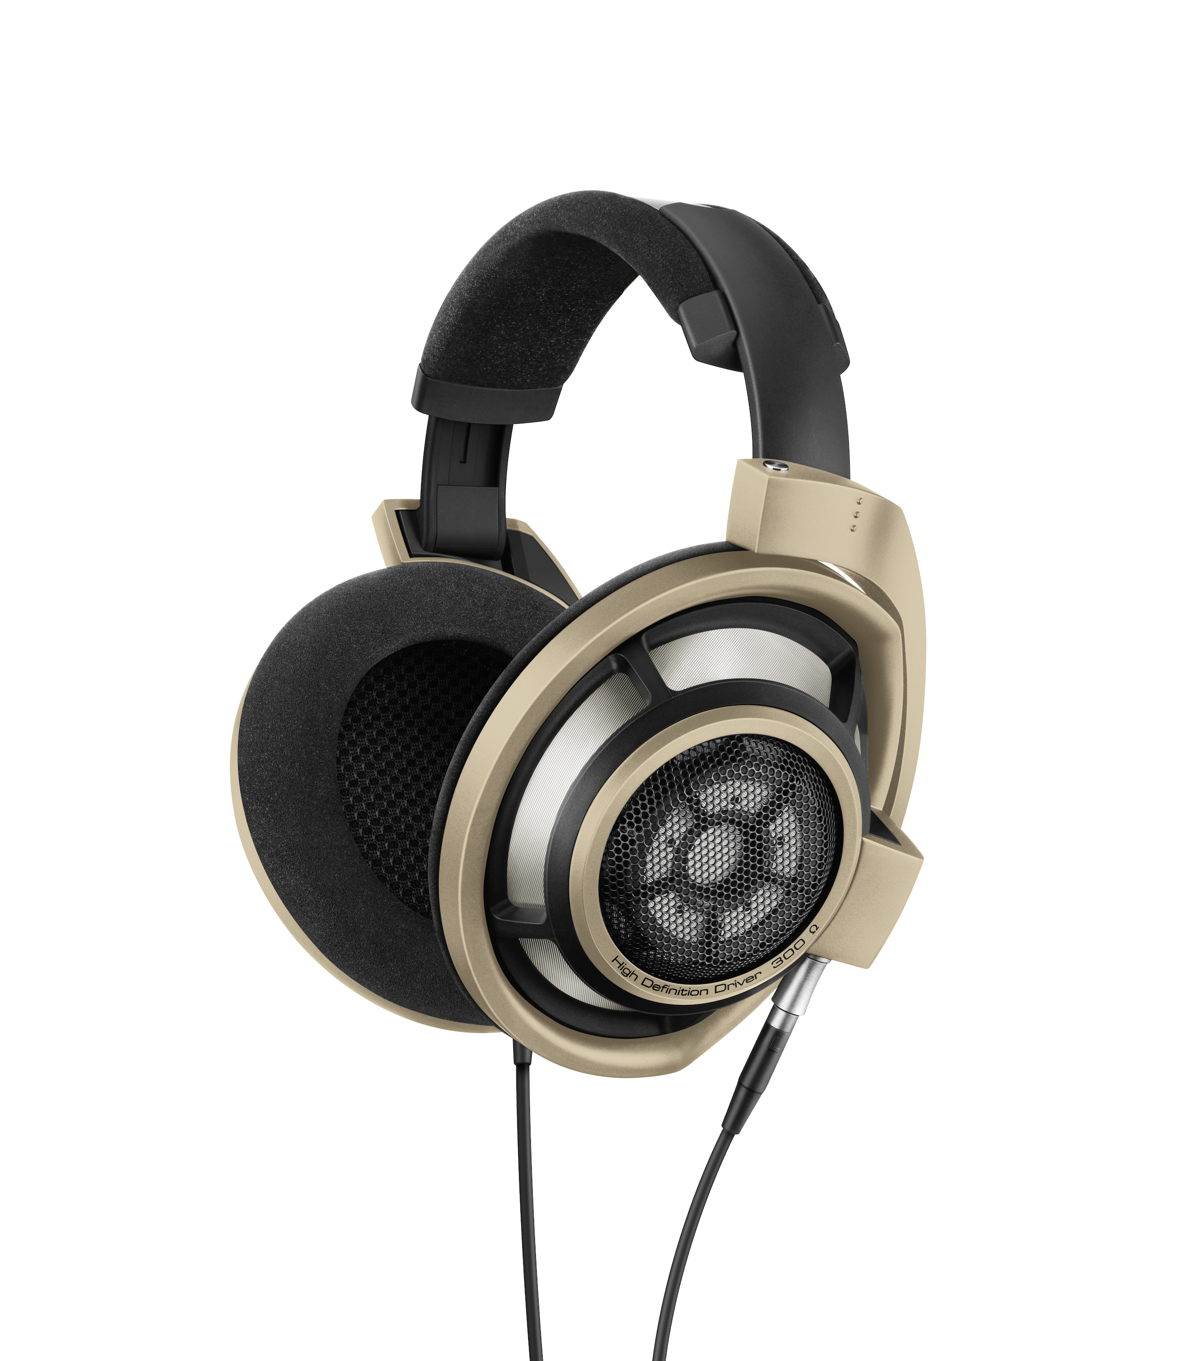 The HD 800 S Anniversary Edition delivers the same natural and spatial acoustics found in the acclaimed HD 800